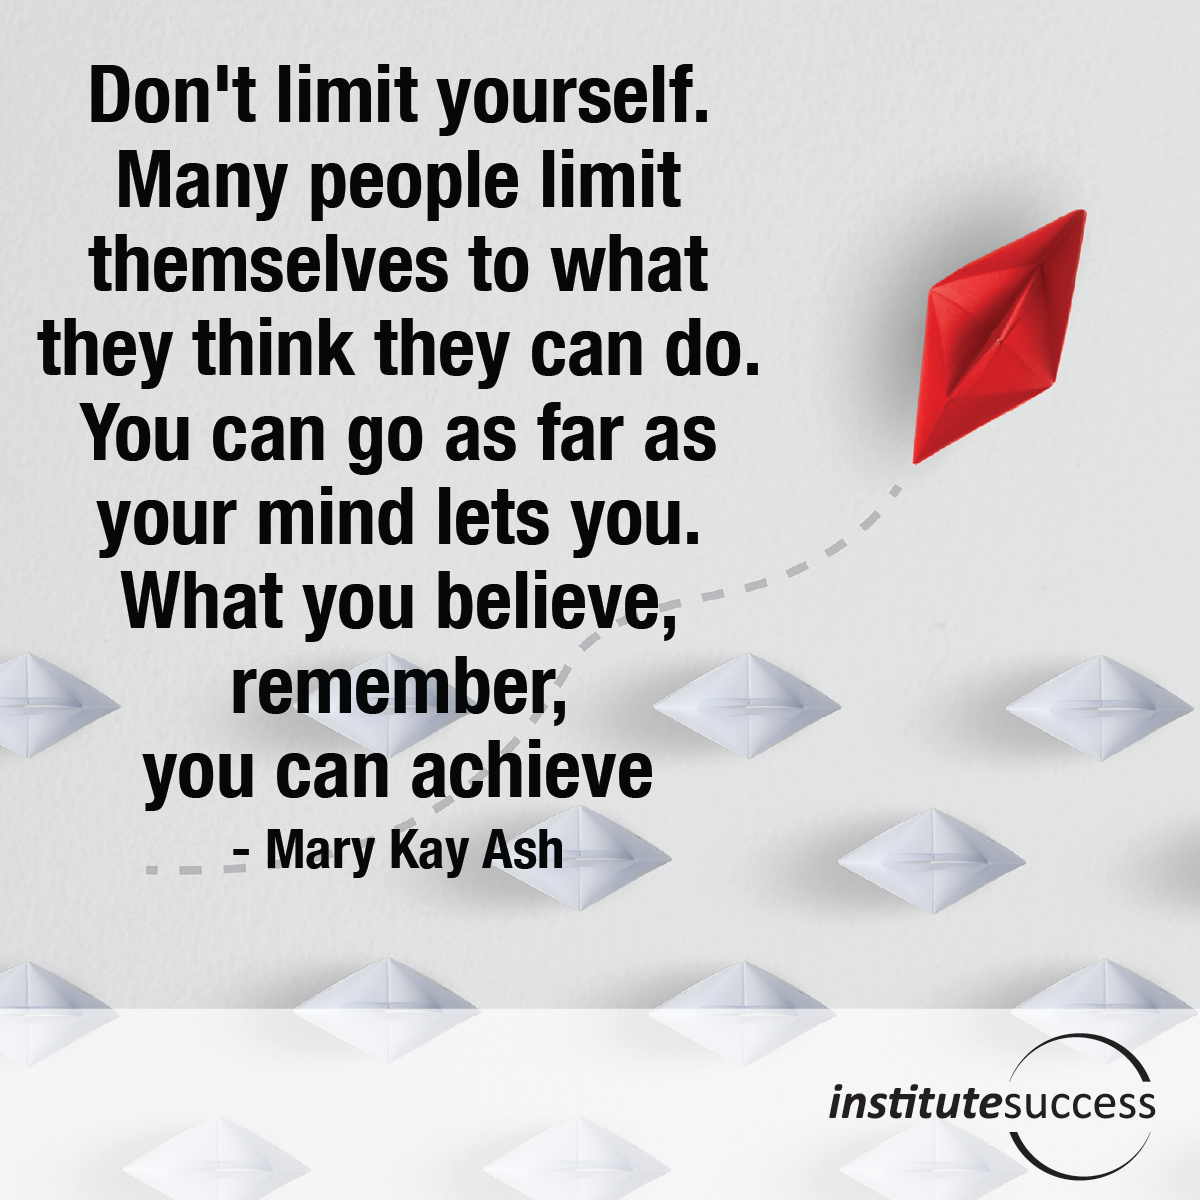 Don't limit yourself. Many people limit themselves to what they think they can do. You can go as far as your mind lets you. What you believe, remember, you can achieve – Mary Kay Ash